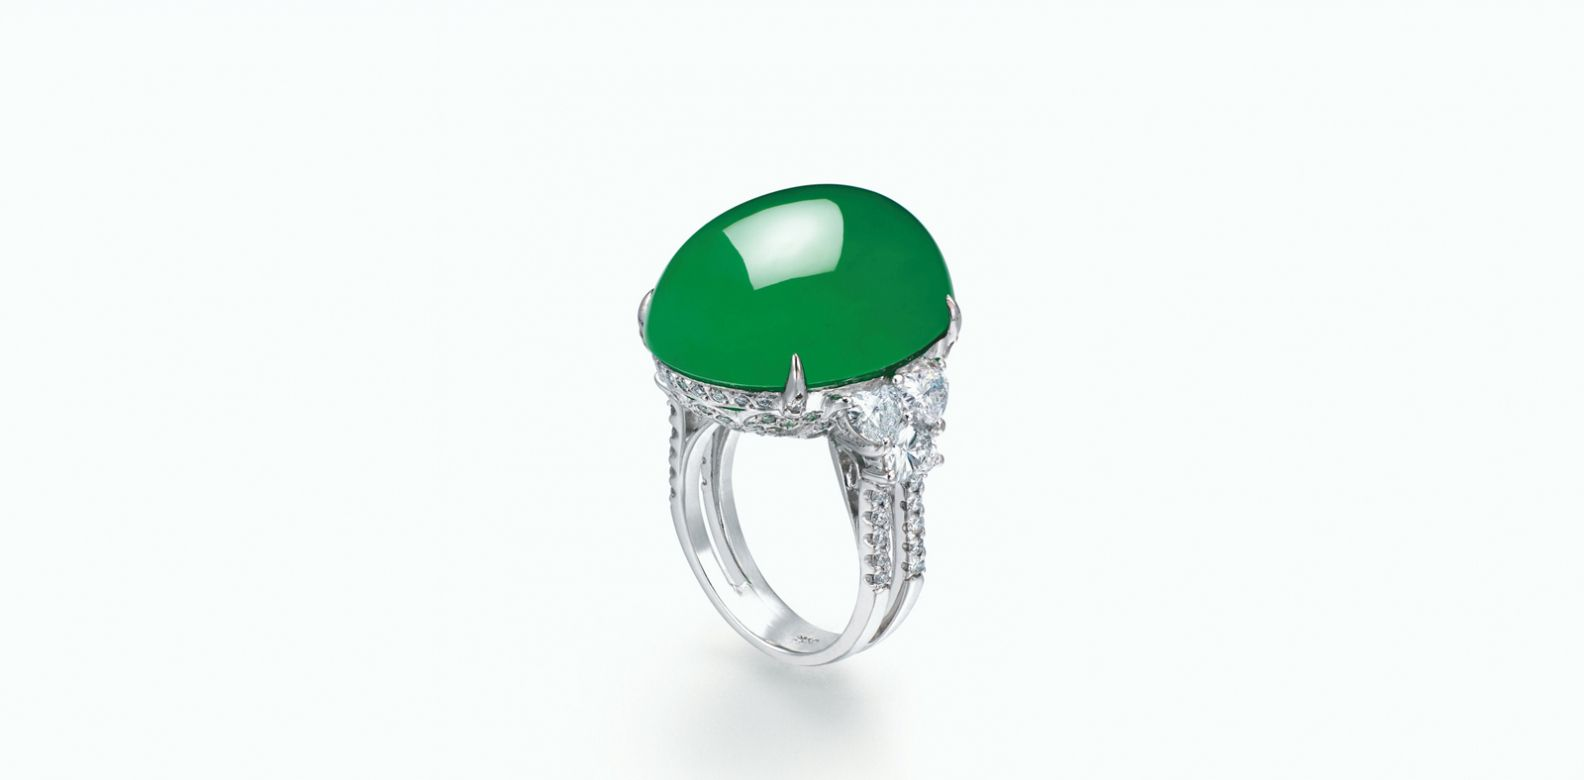 Jadeite cabochon and diamond ring. (Photo: Courtesy of Christie's)